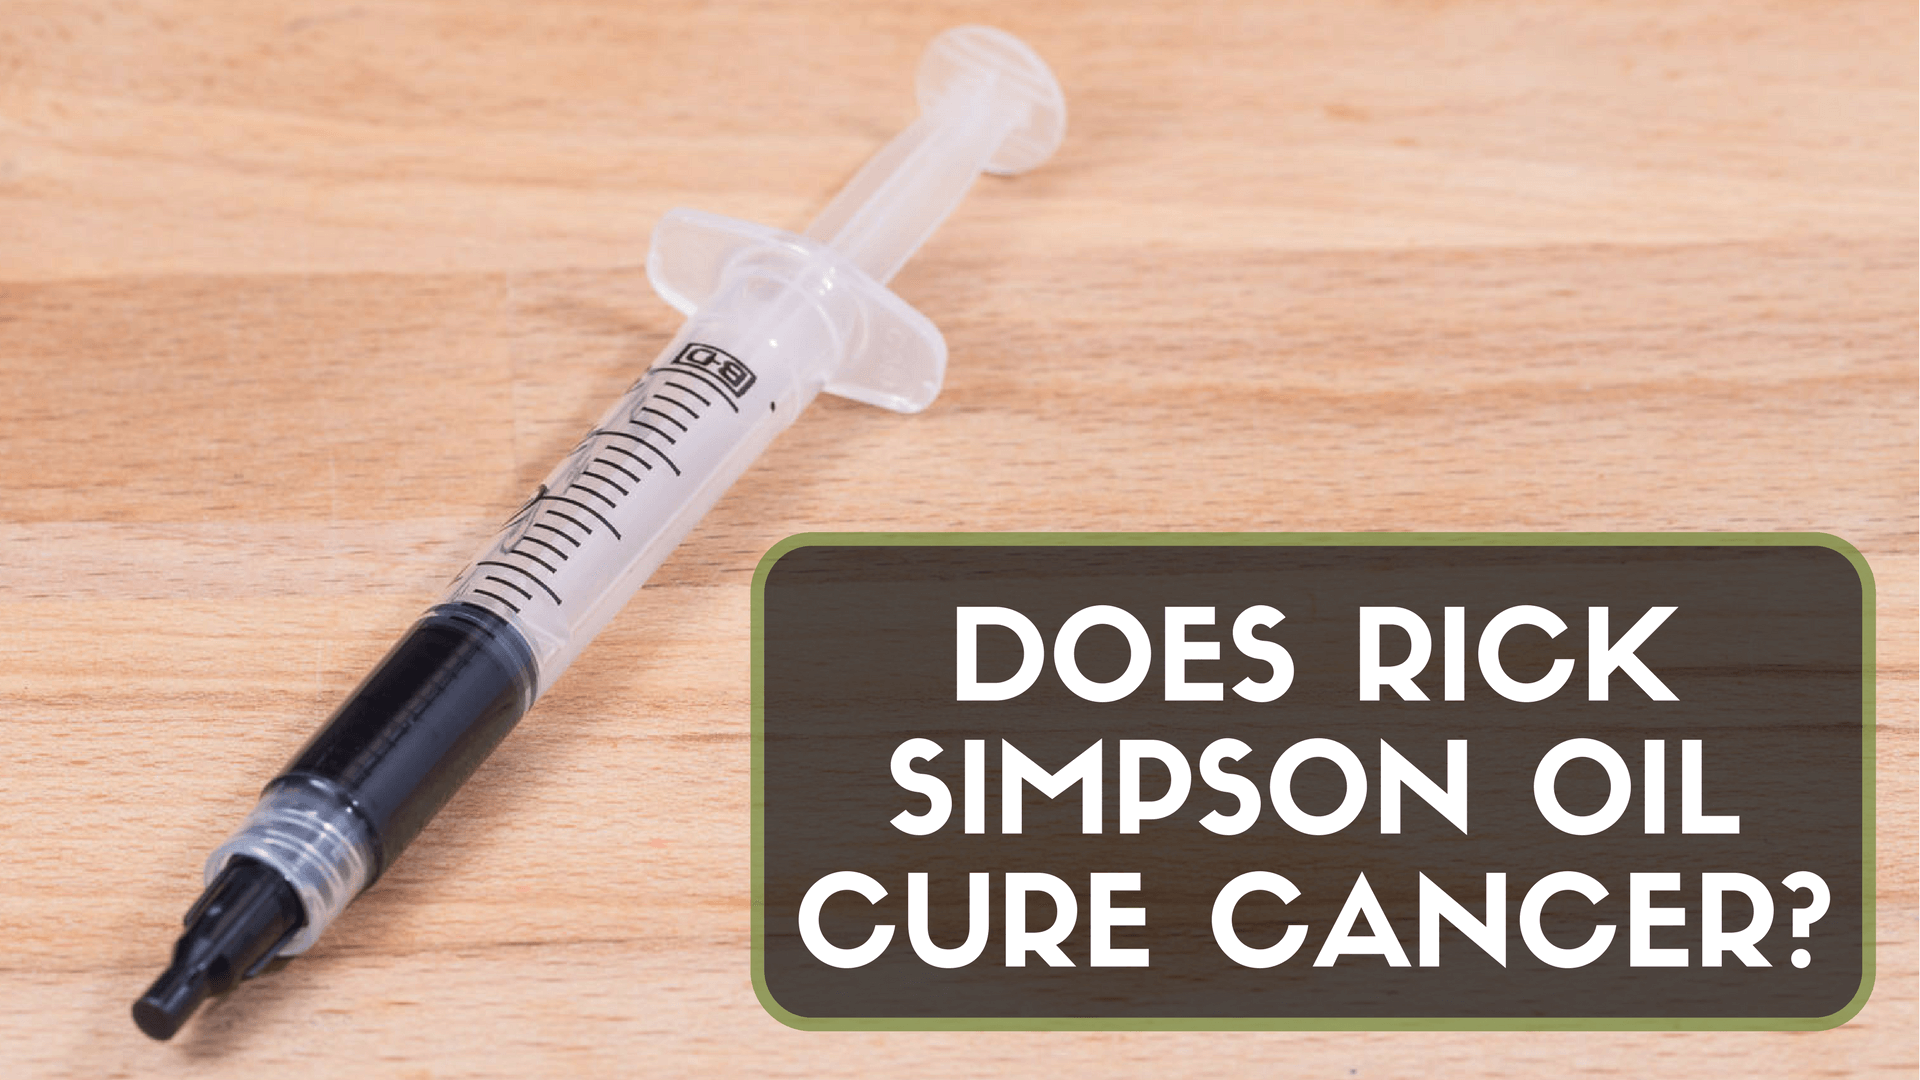 STUDIES THAT SHOW CBD OIL LIKE SIMPSON OIL CAN EFFECTIVELY TREAT CANCER